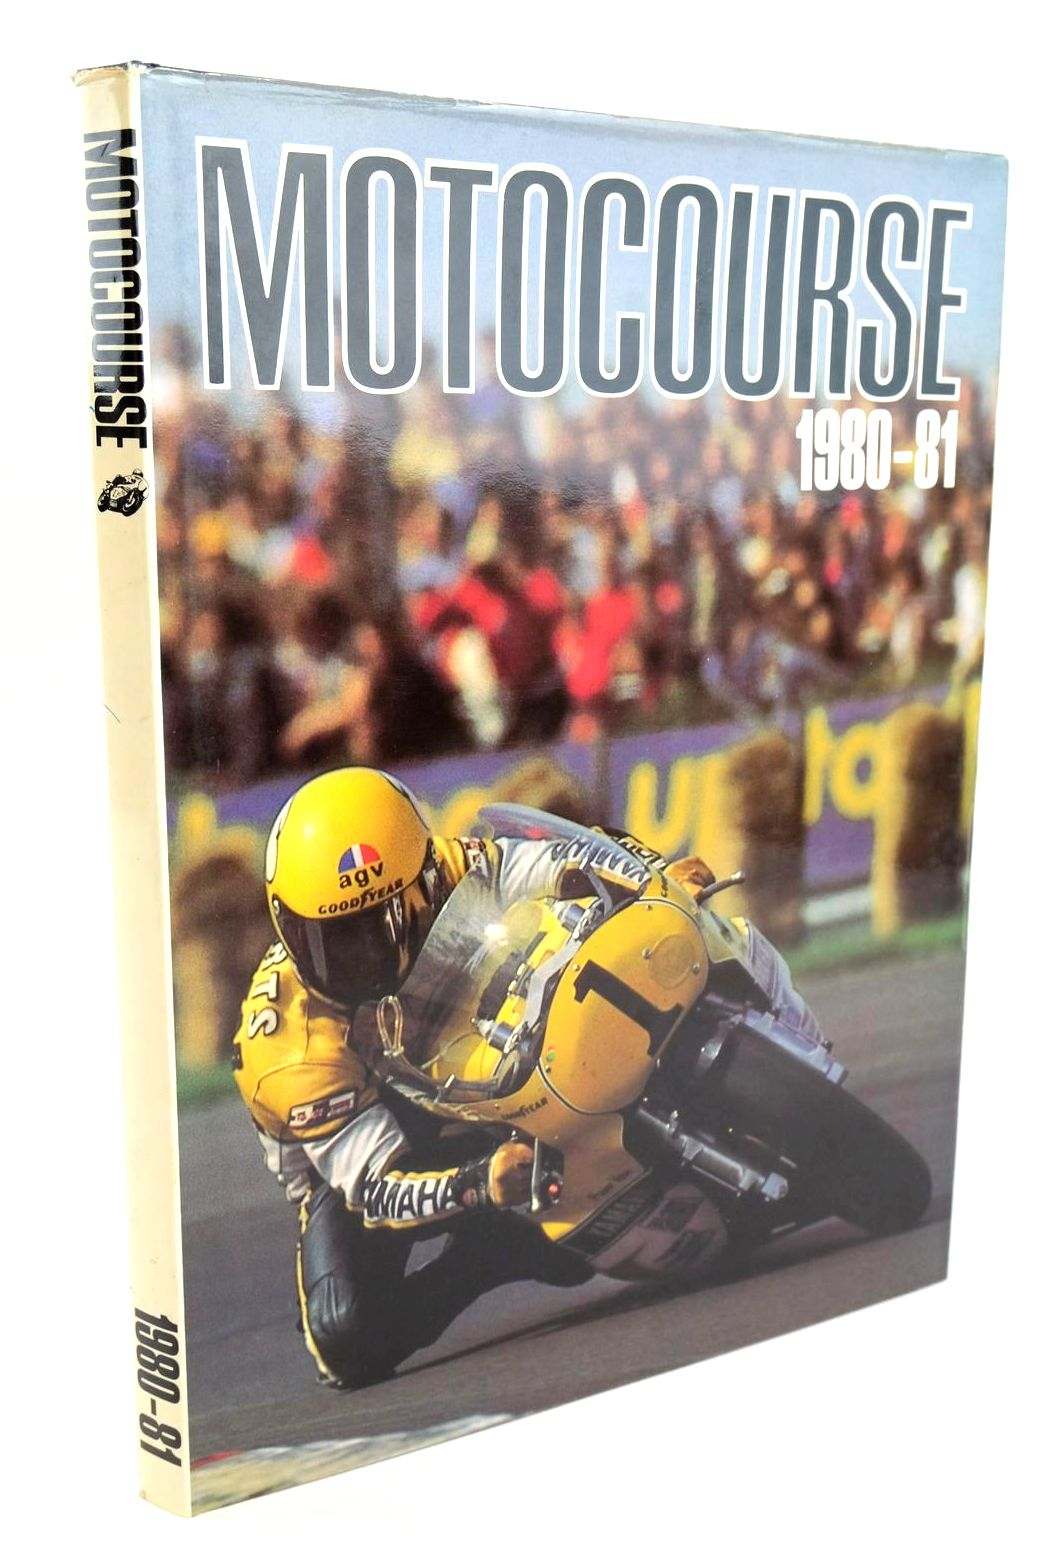 Photo of MOTOCOURSE 1980-81 published by Hazleton Publishing (STOCK CODE: 1319329)  for sale by Stella & Rose's Books